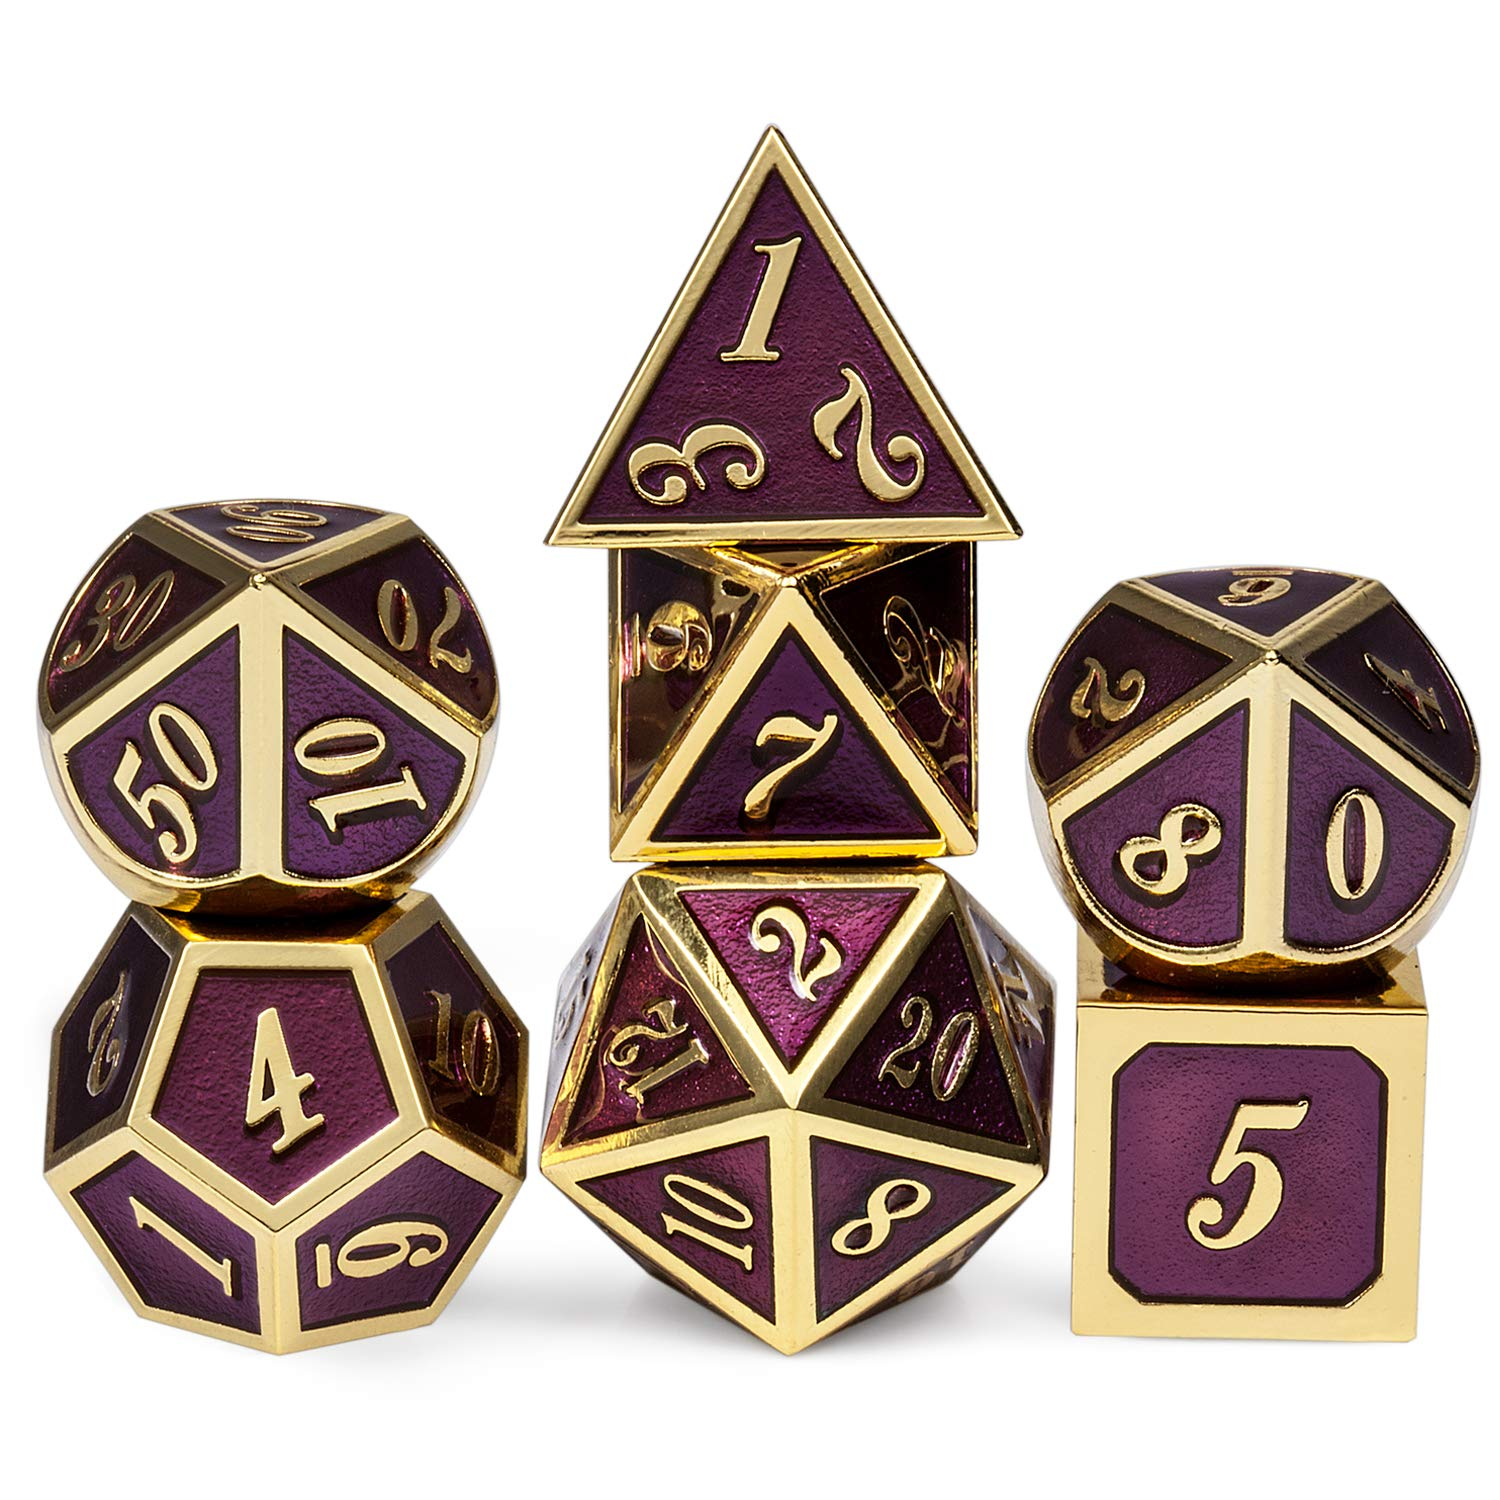 Table Game Metal Dice Set, 7PCS D&D Metal Die with Metal Gift Box for Tabletop Games Dungeons and Dragons Dice (Dark Purple and Gold Number) by DNDND (Image #1)